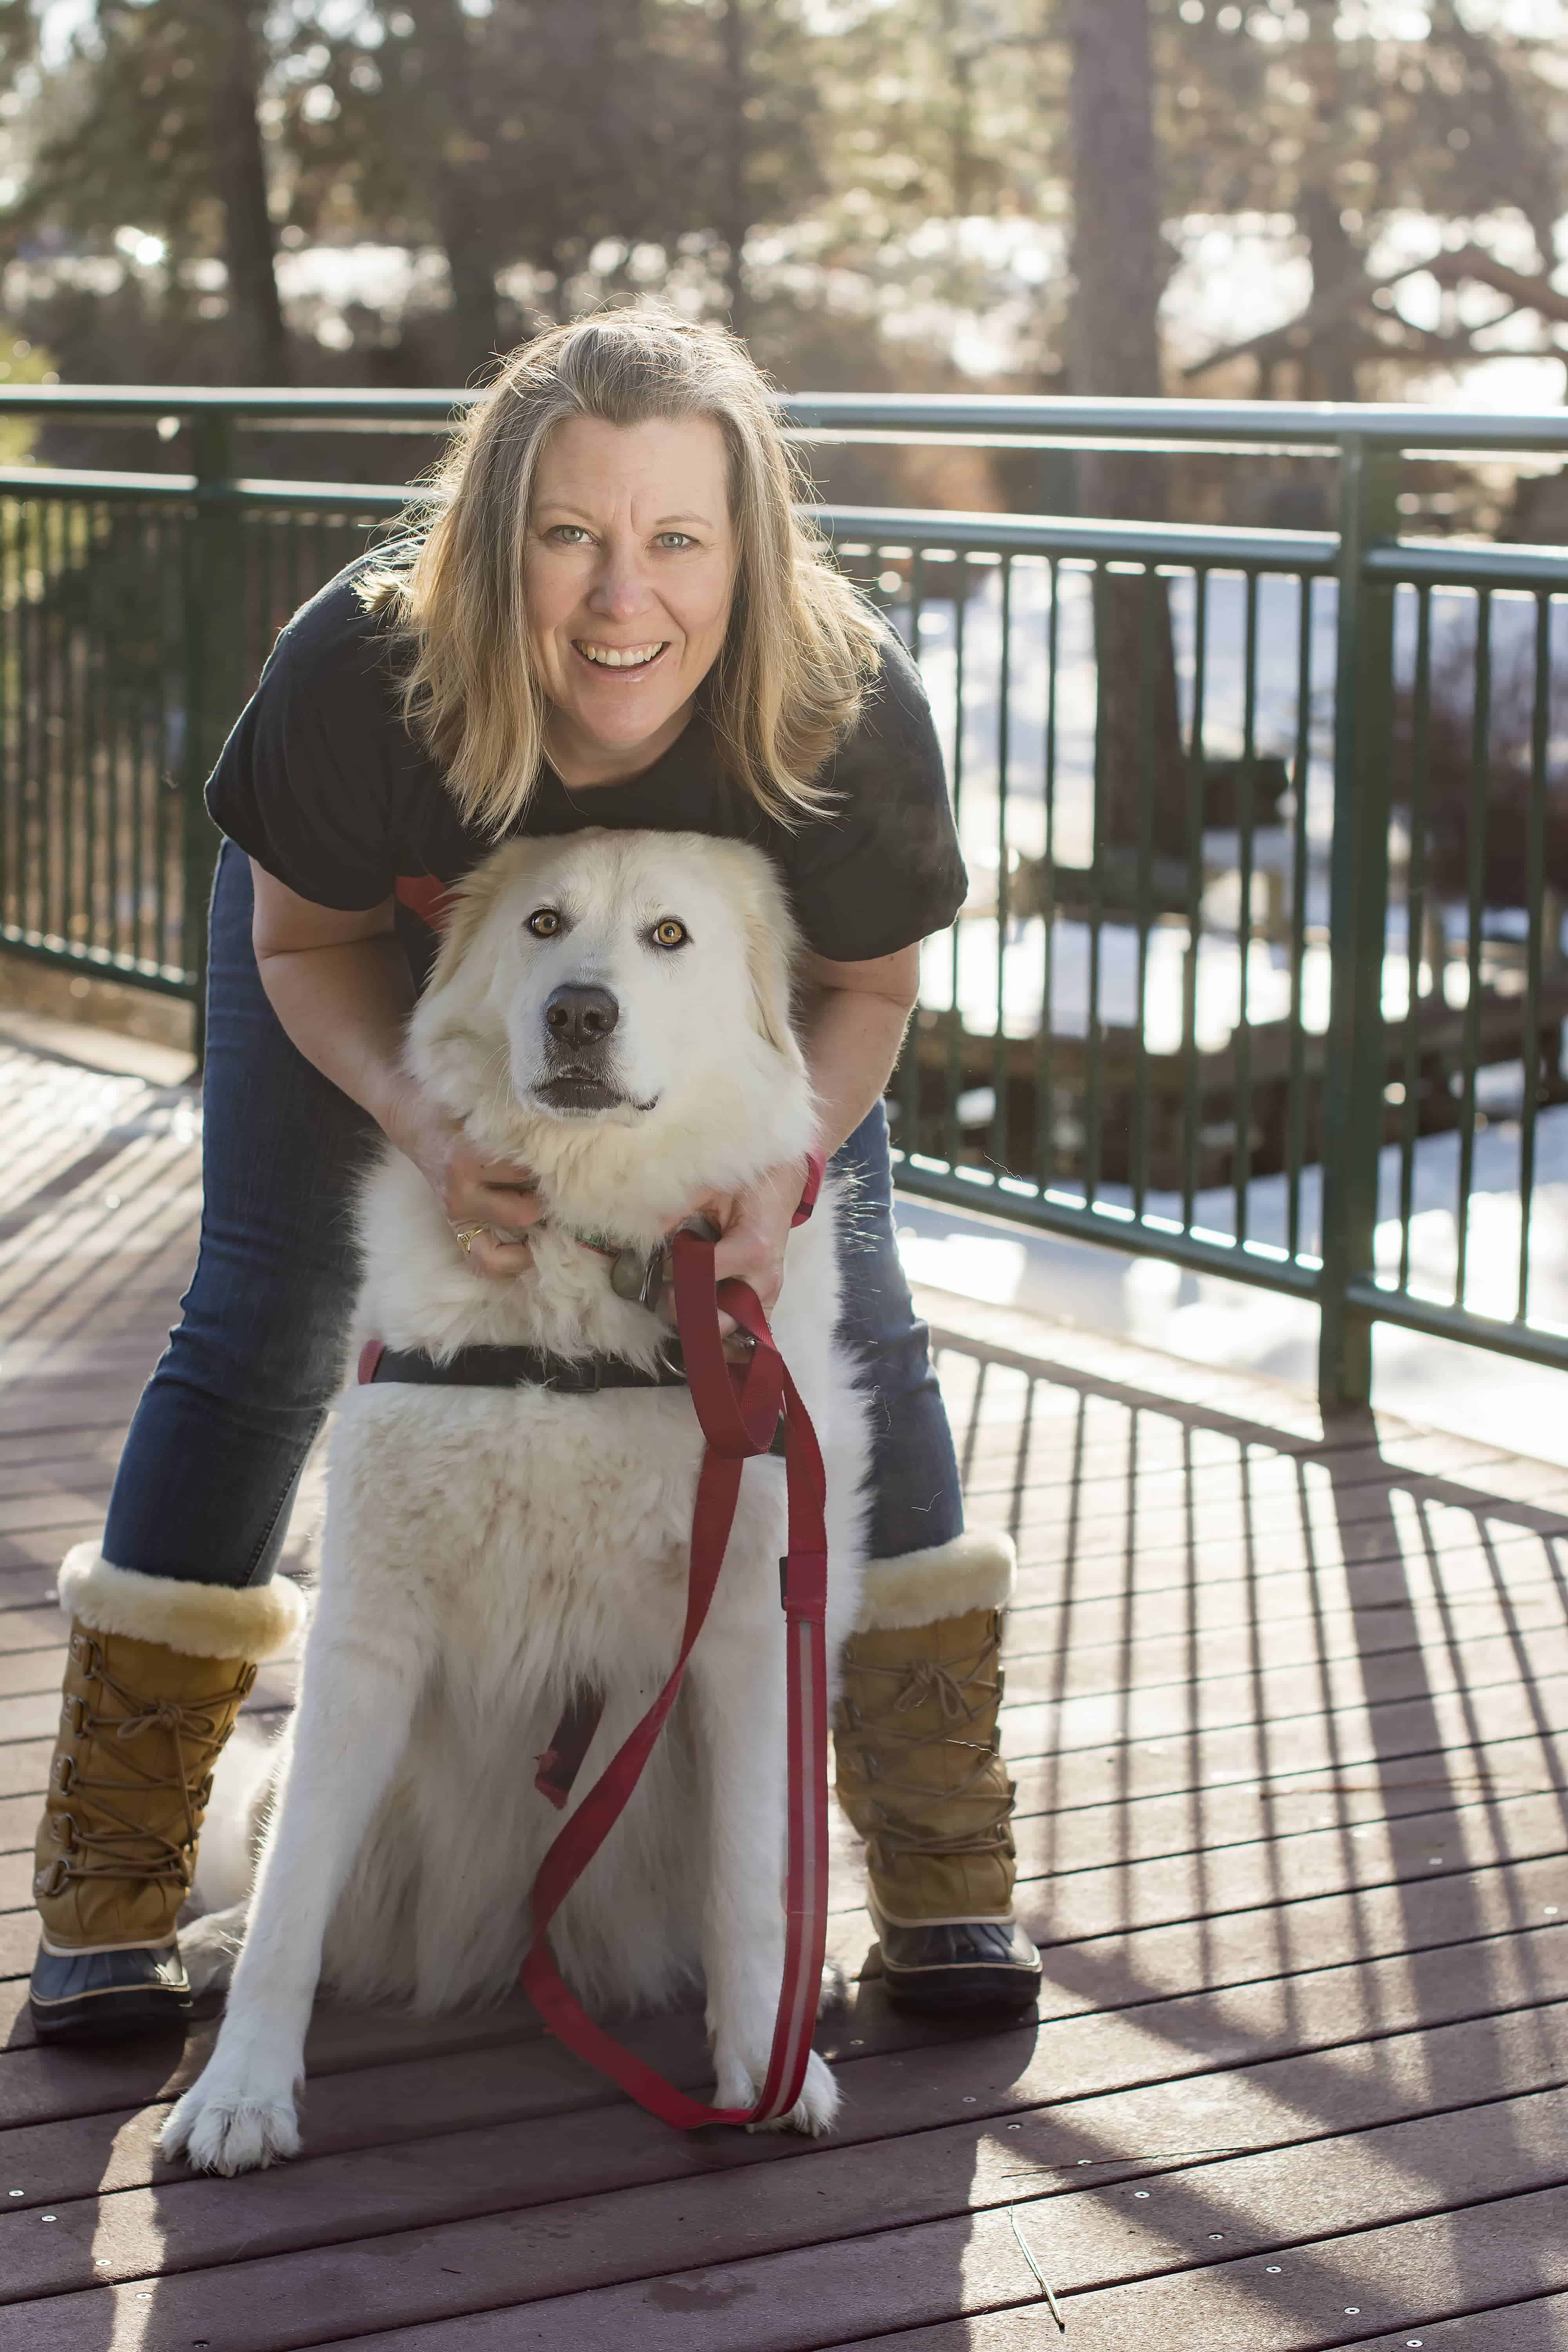 Angela from Noses and Toes Photography with her pup, Bella!